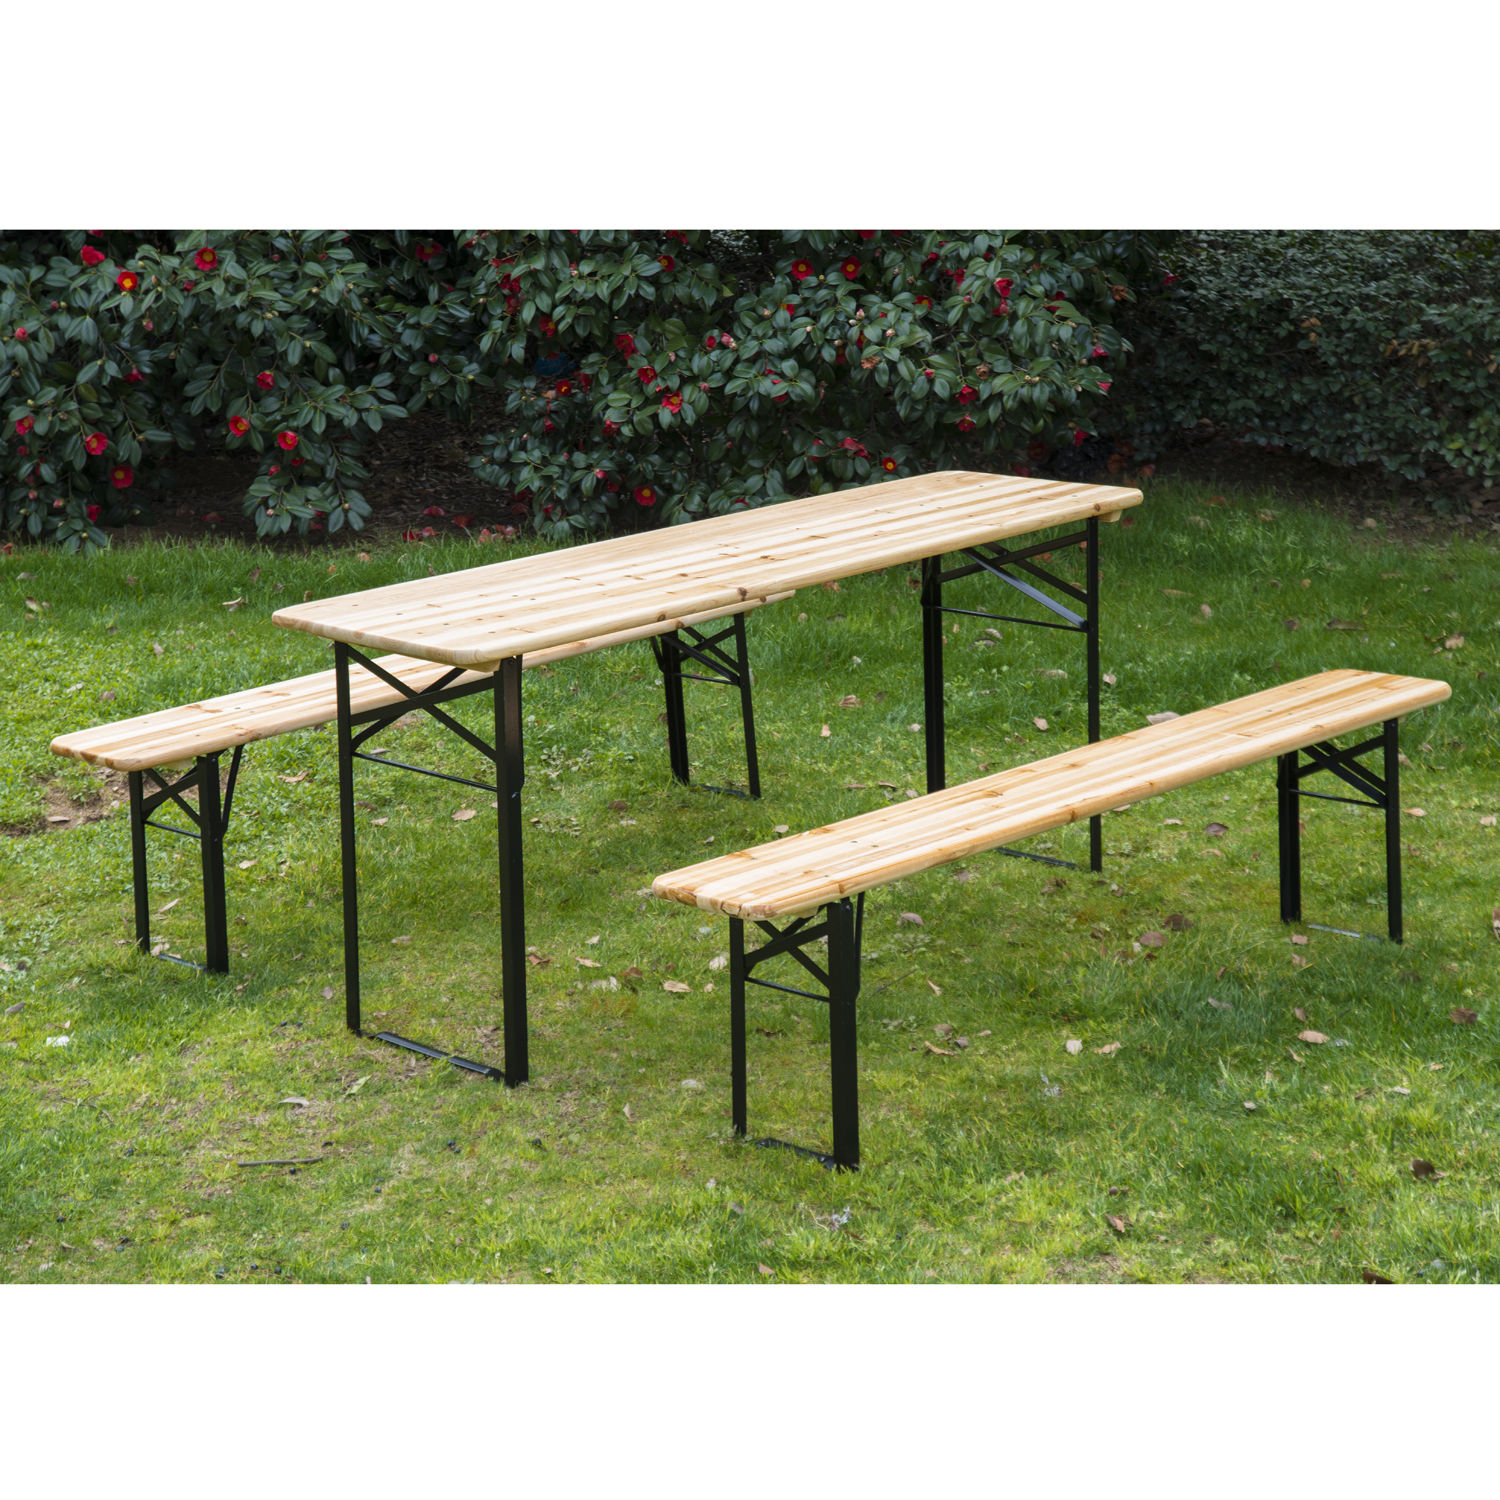 plastic tables faux assets folding brown top ships on p benches wood lifetime table foot free images sale picnic bench pack